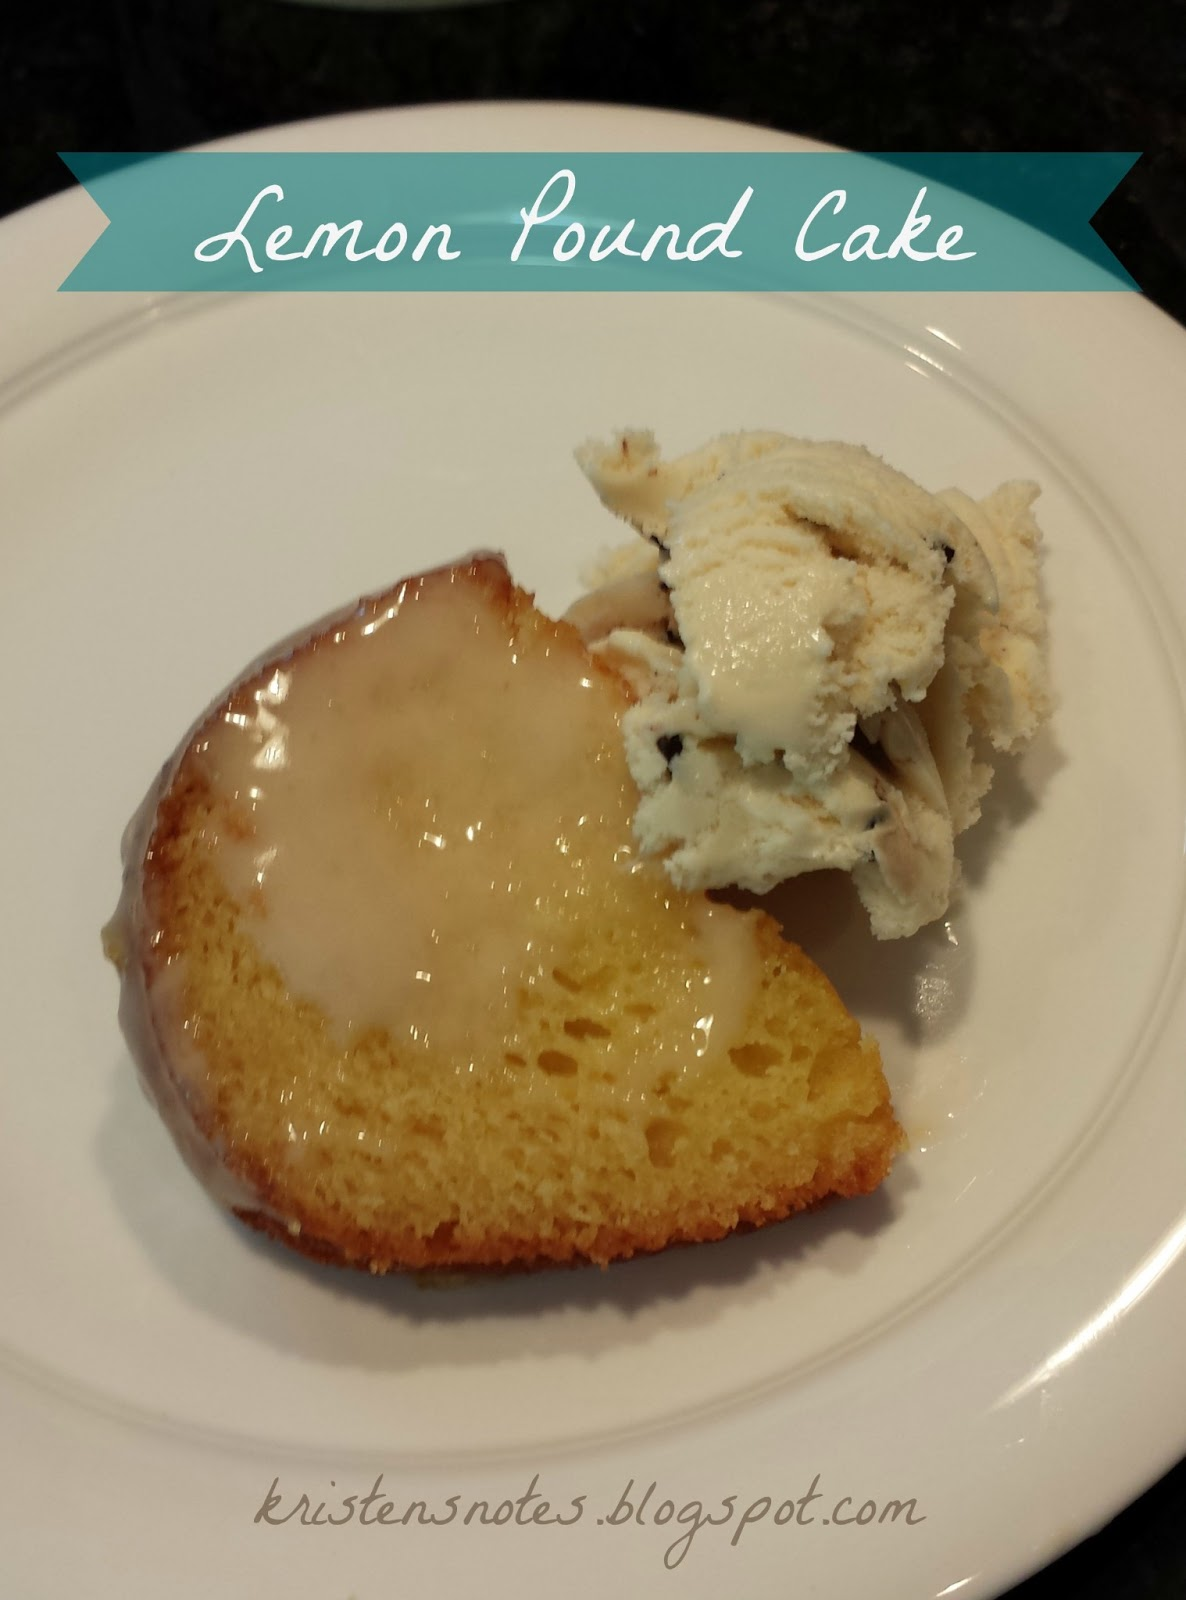 Notes from Kristen: Easy Lemon Pound Cake